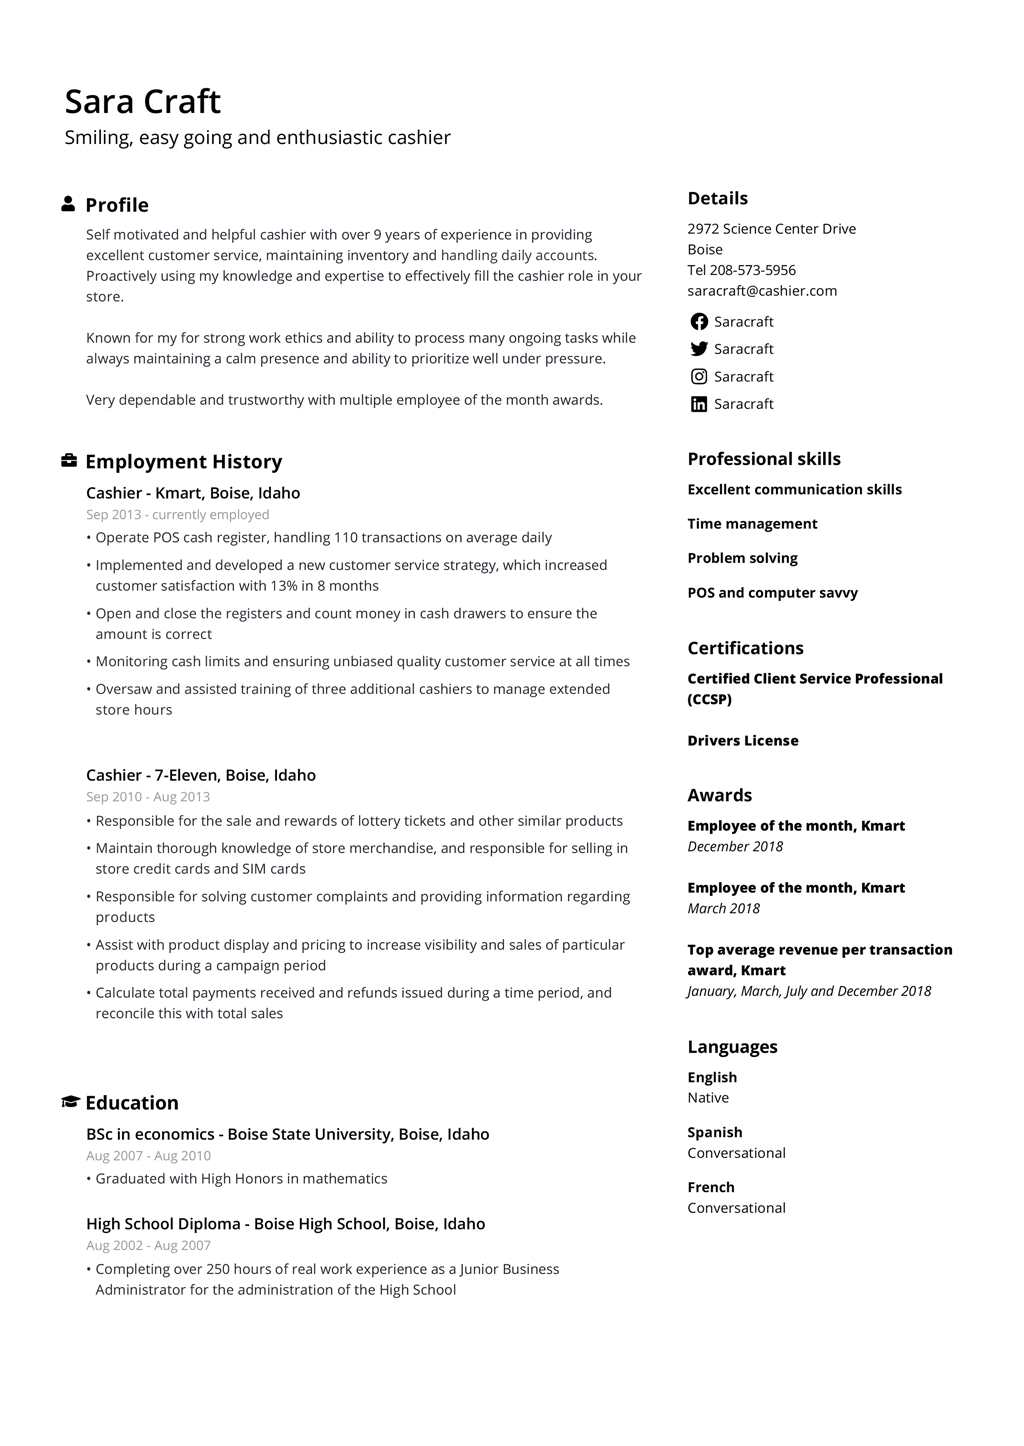 Online Resume Builder: Create the Perfect Resume for 2021